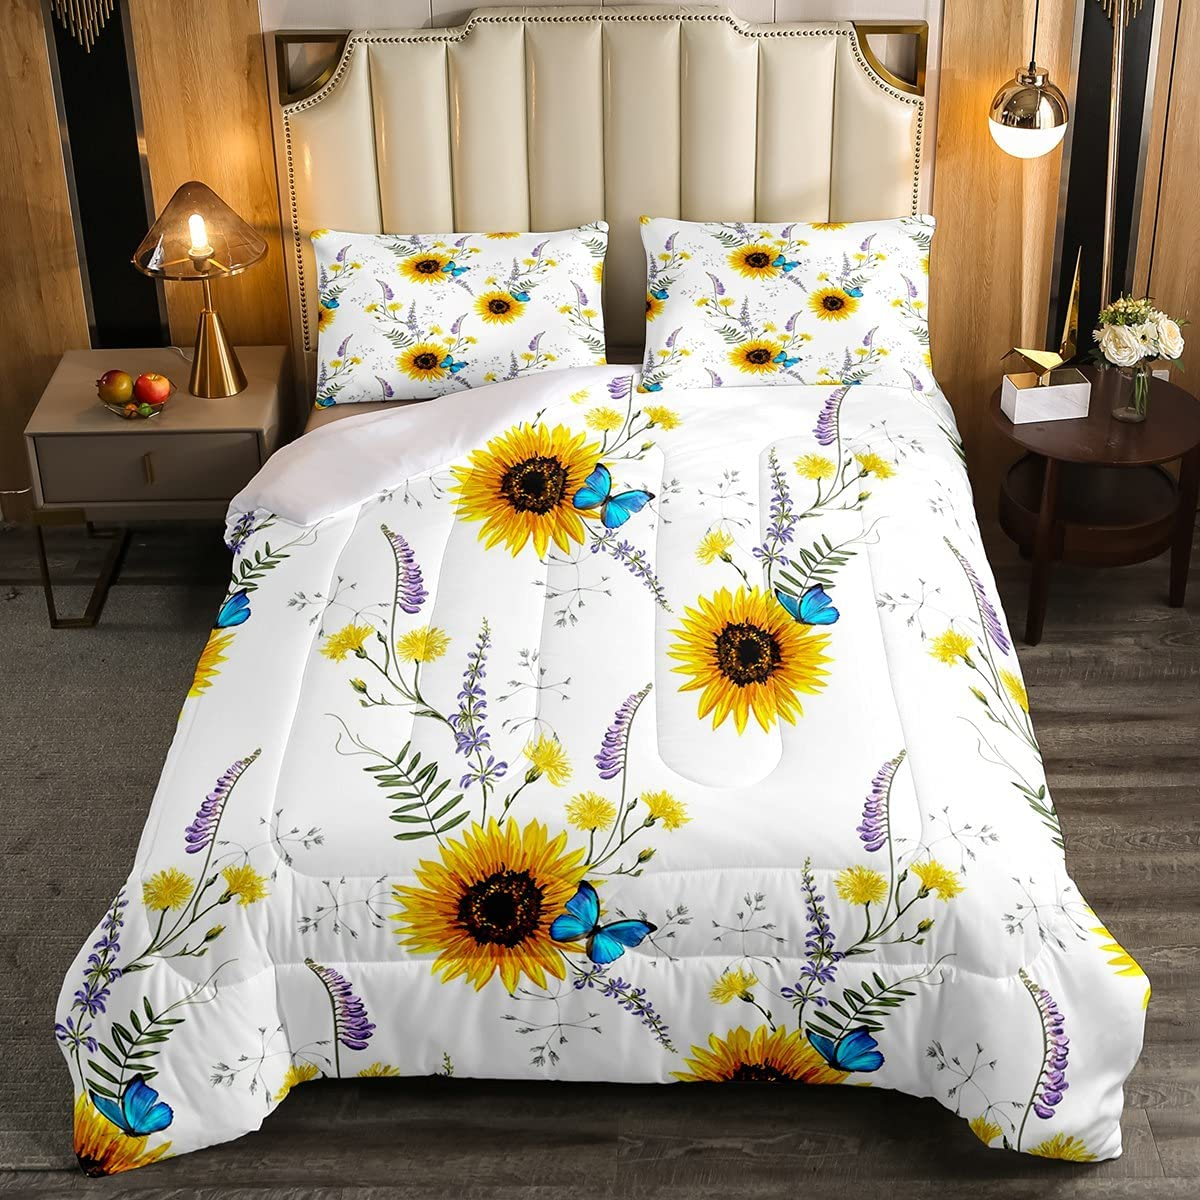 Sunflower Comforter Set Twin Size Quantity limited Super sale fo Bedding Butterfly Blue